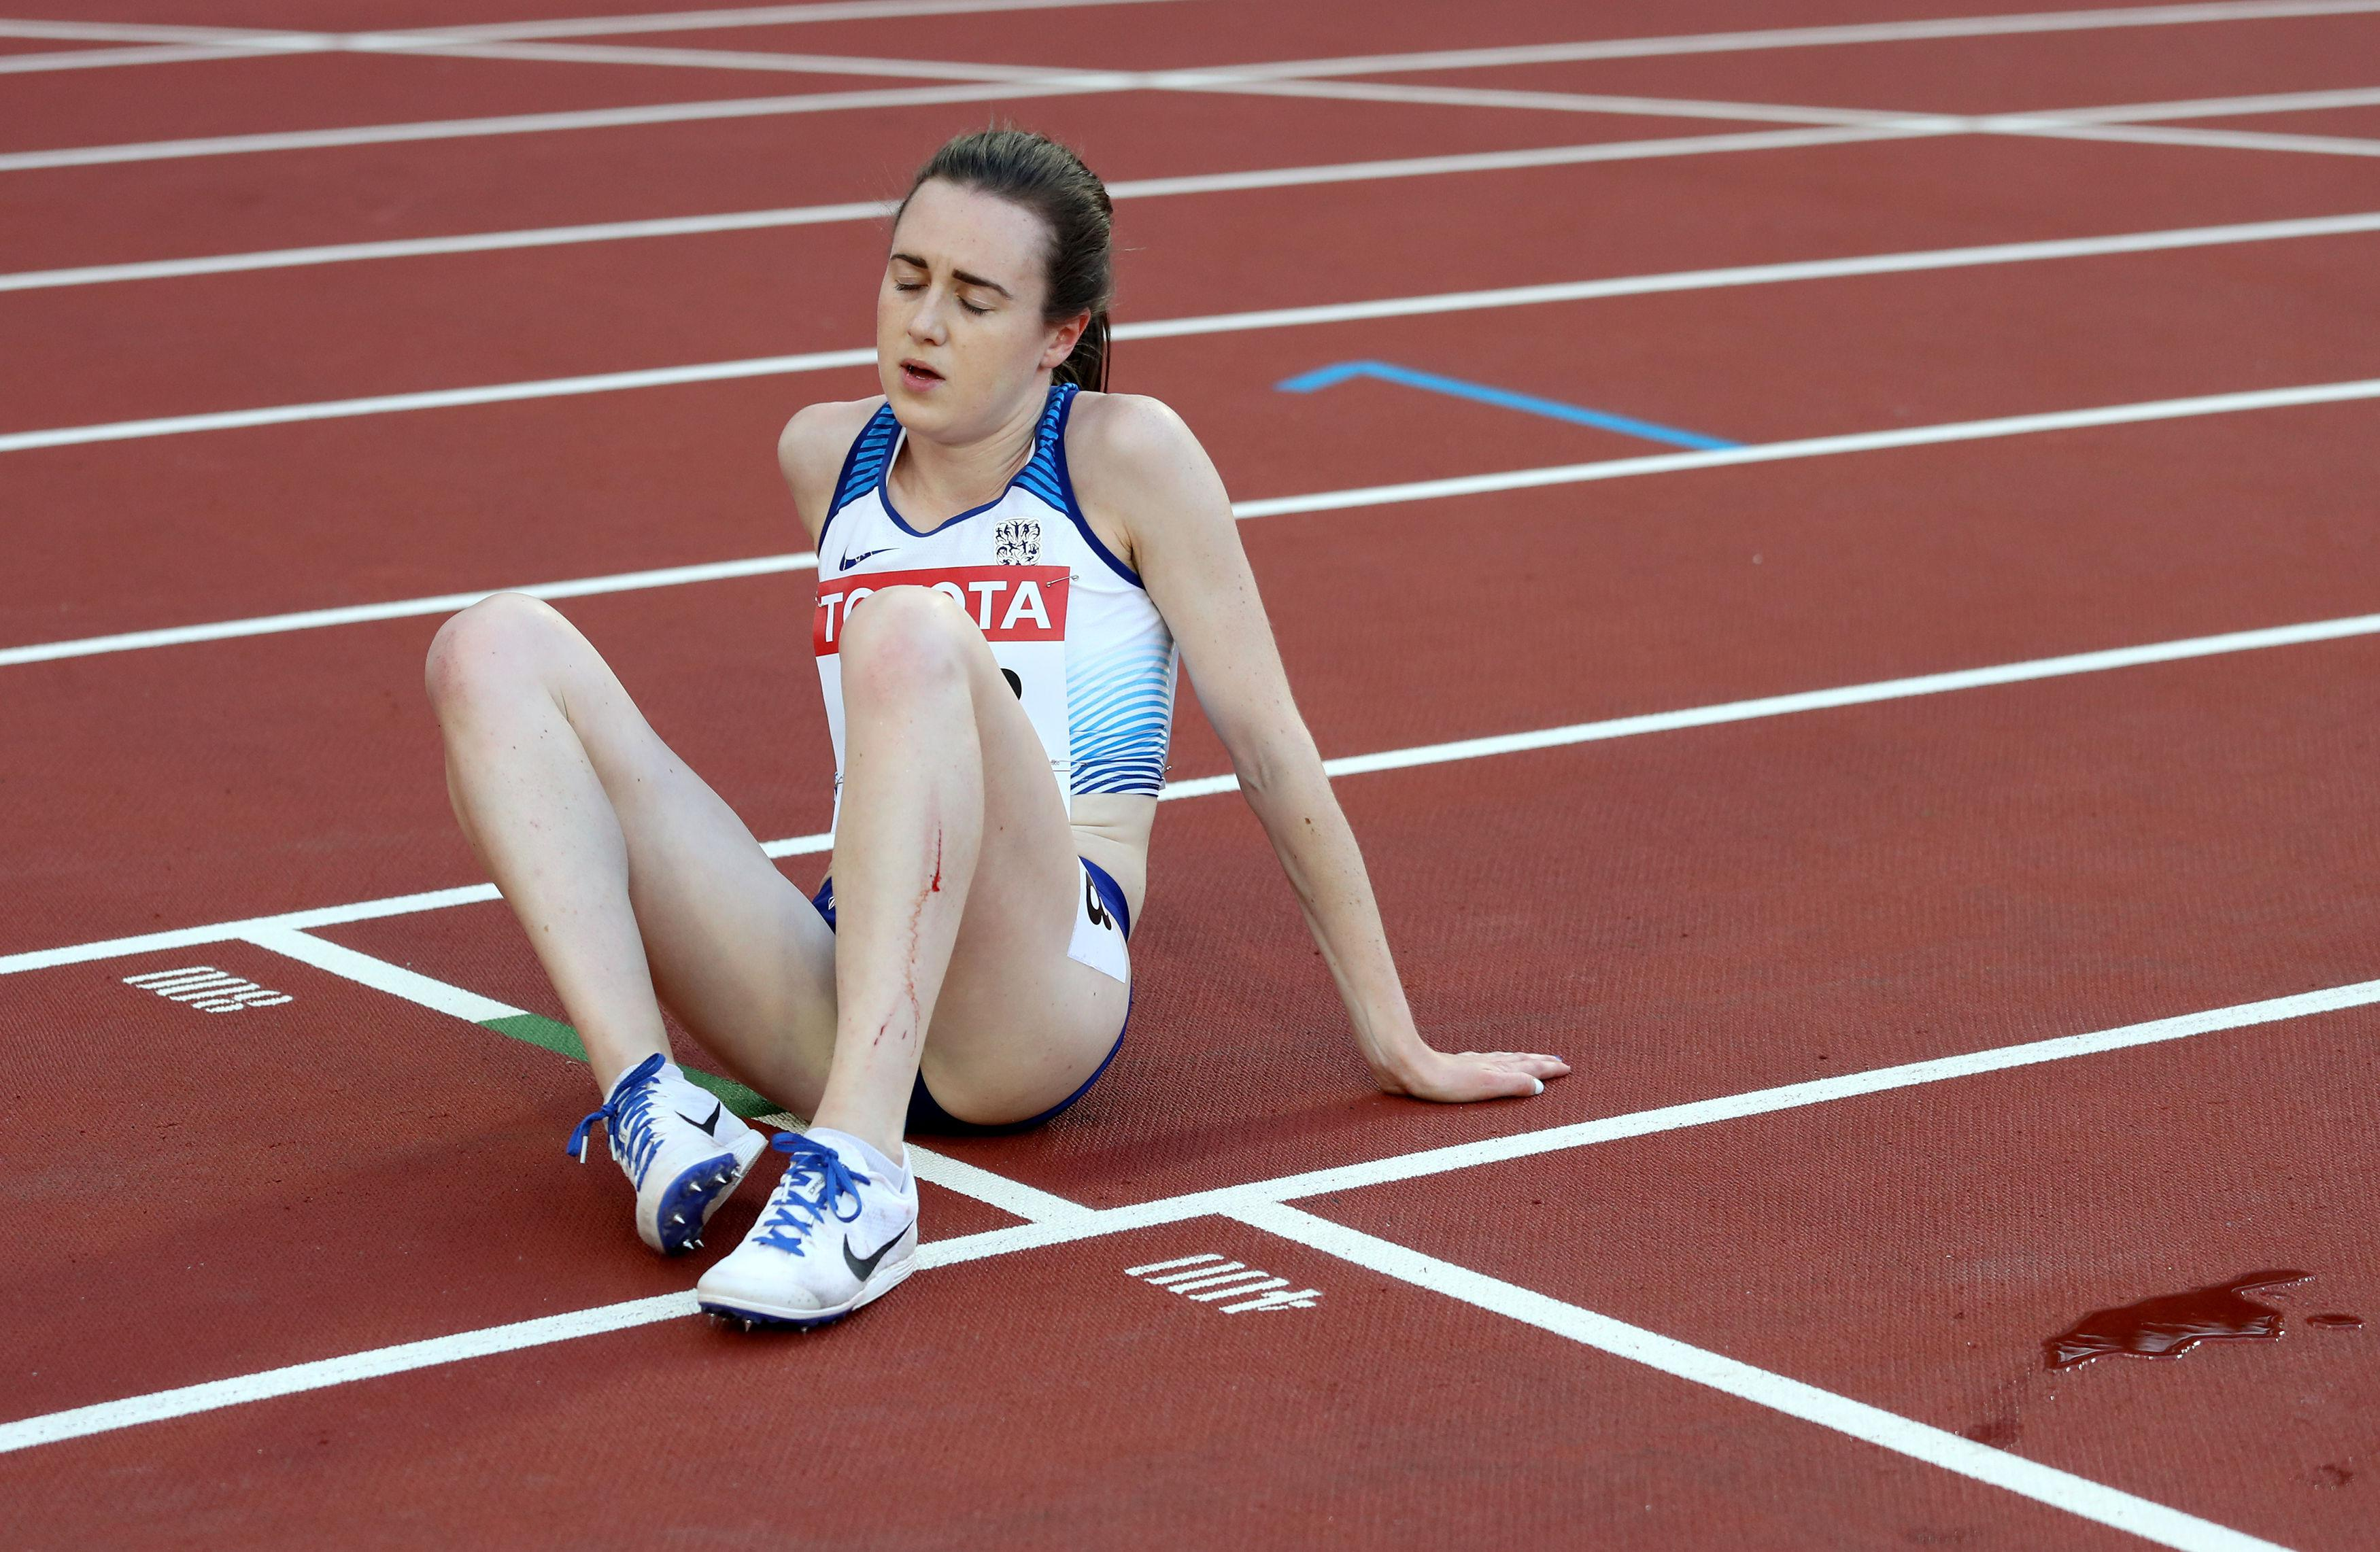 The British hopeful collapsed on the track at the end of her heat